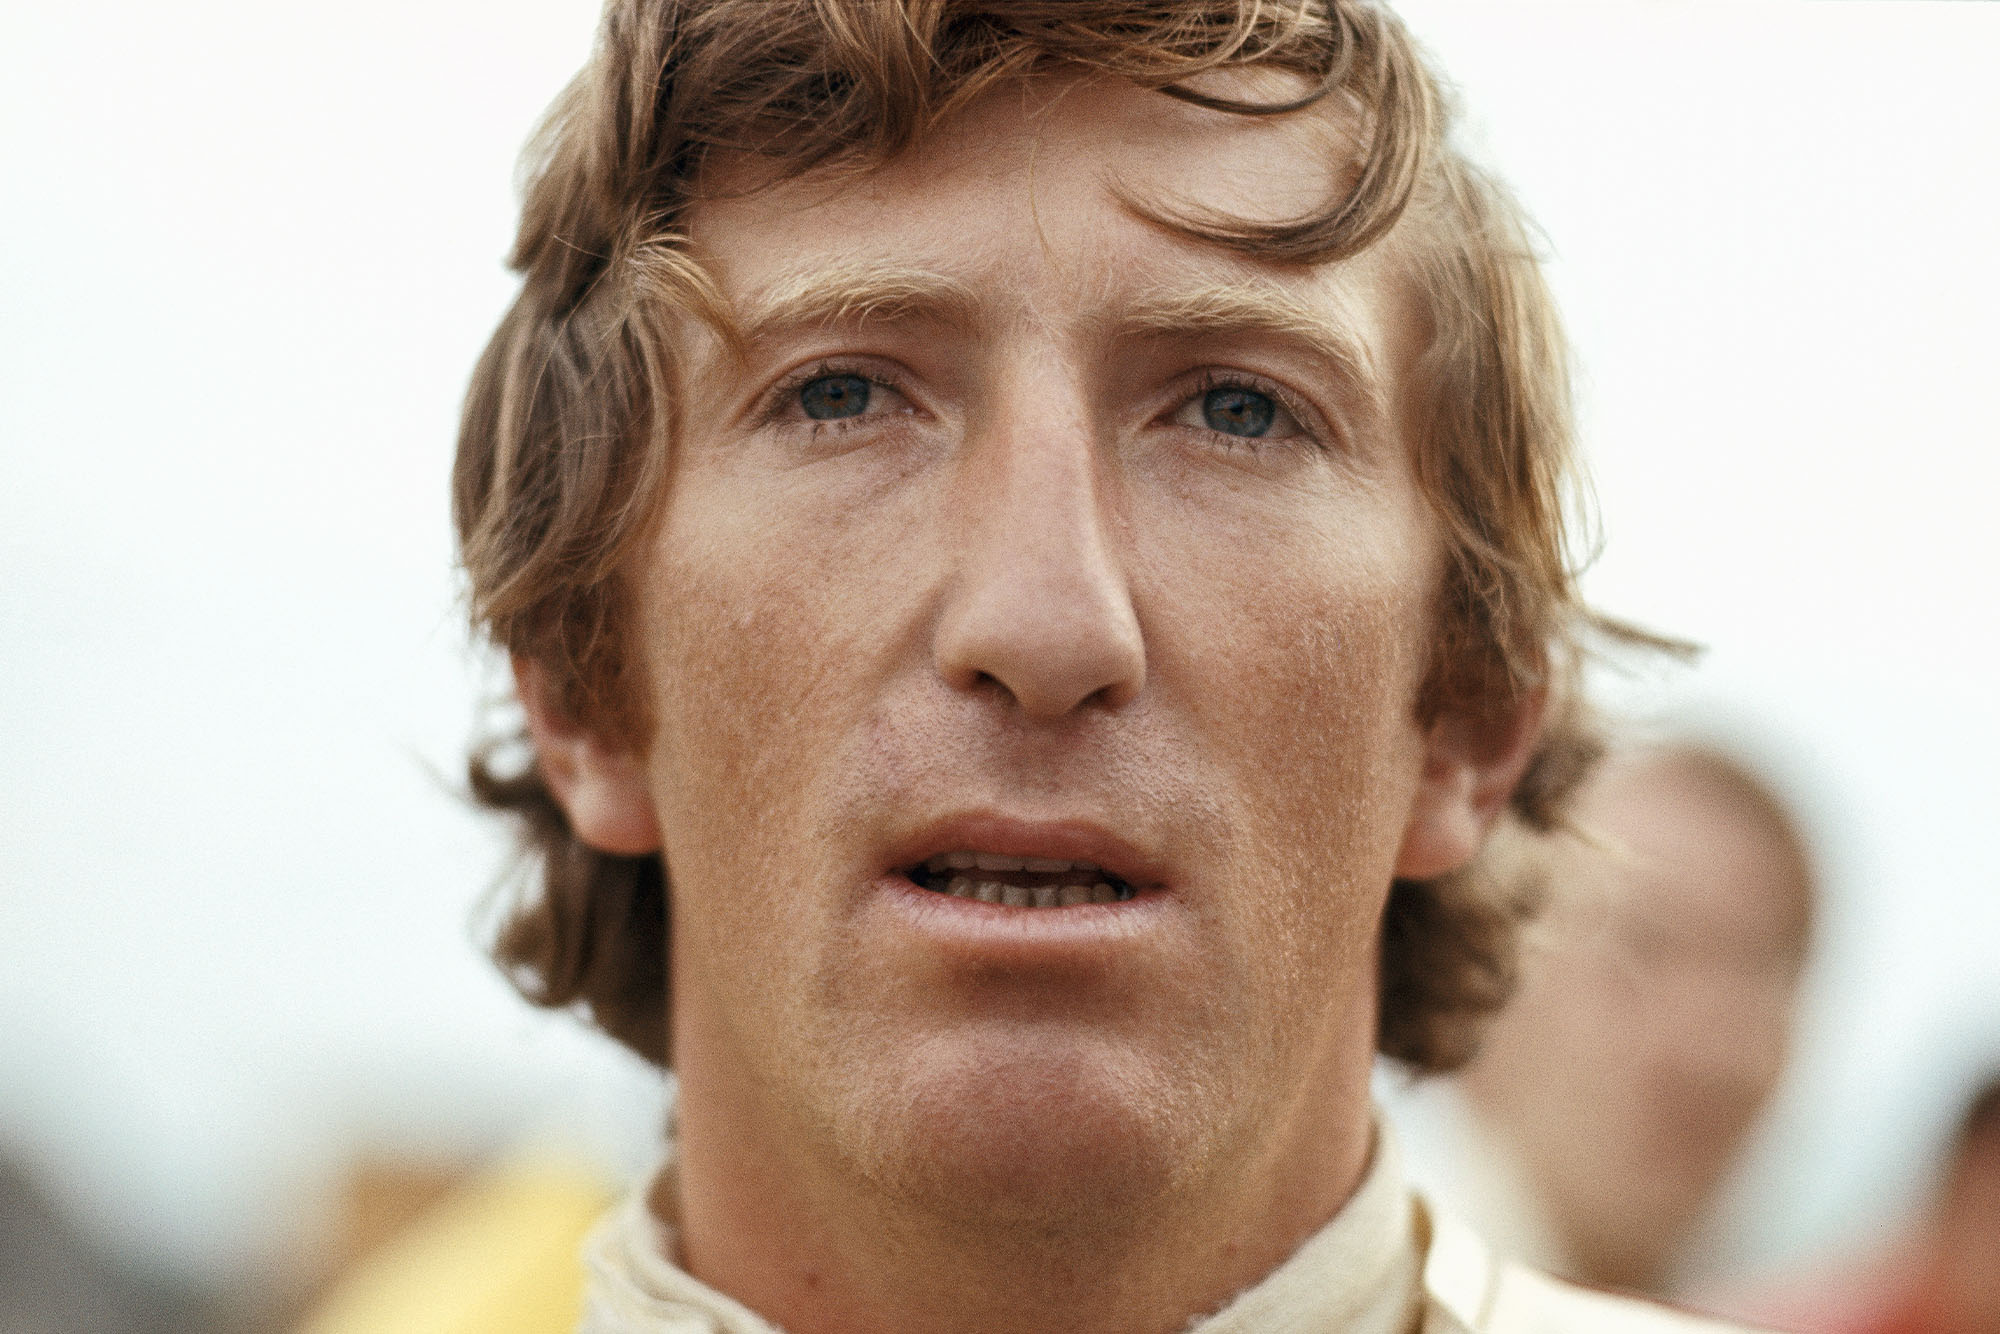 Lotus driver Jochen Rindt pictured at the 1970 Italian Grand Prix